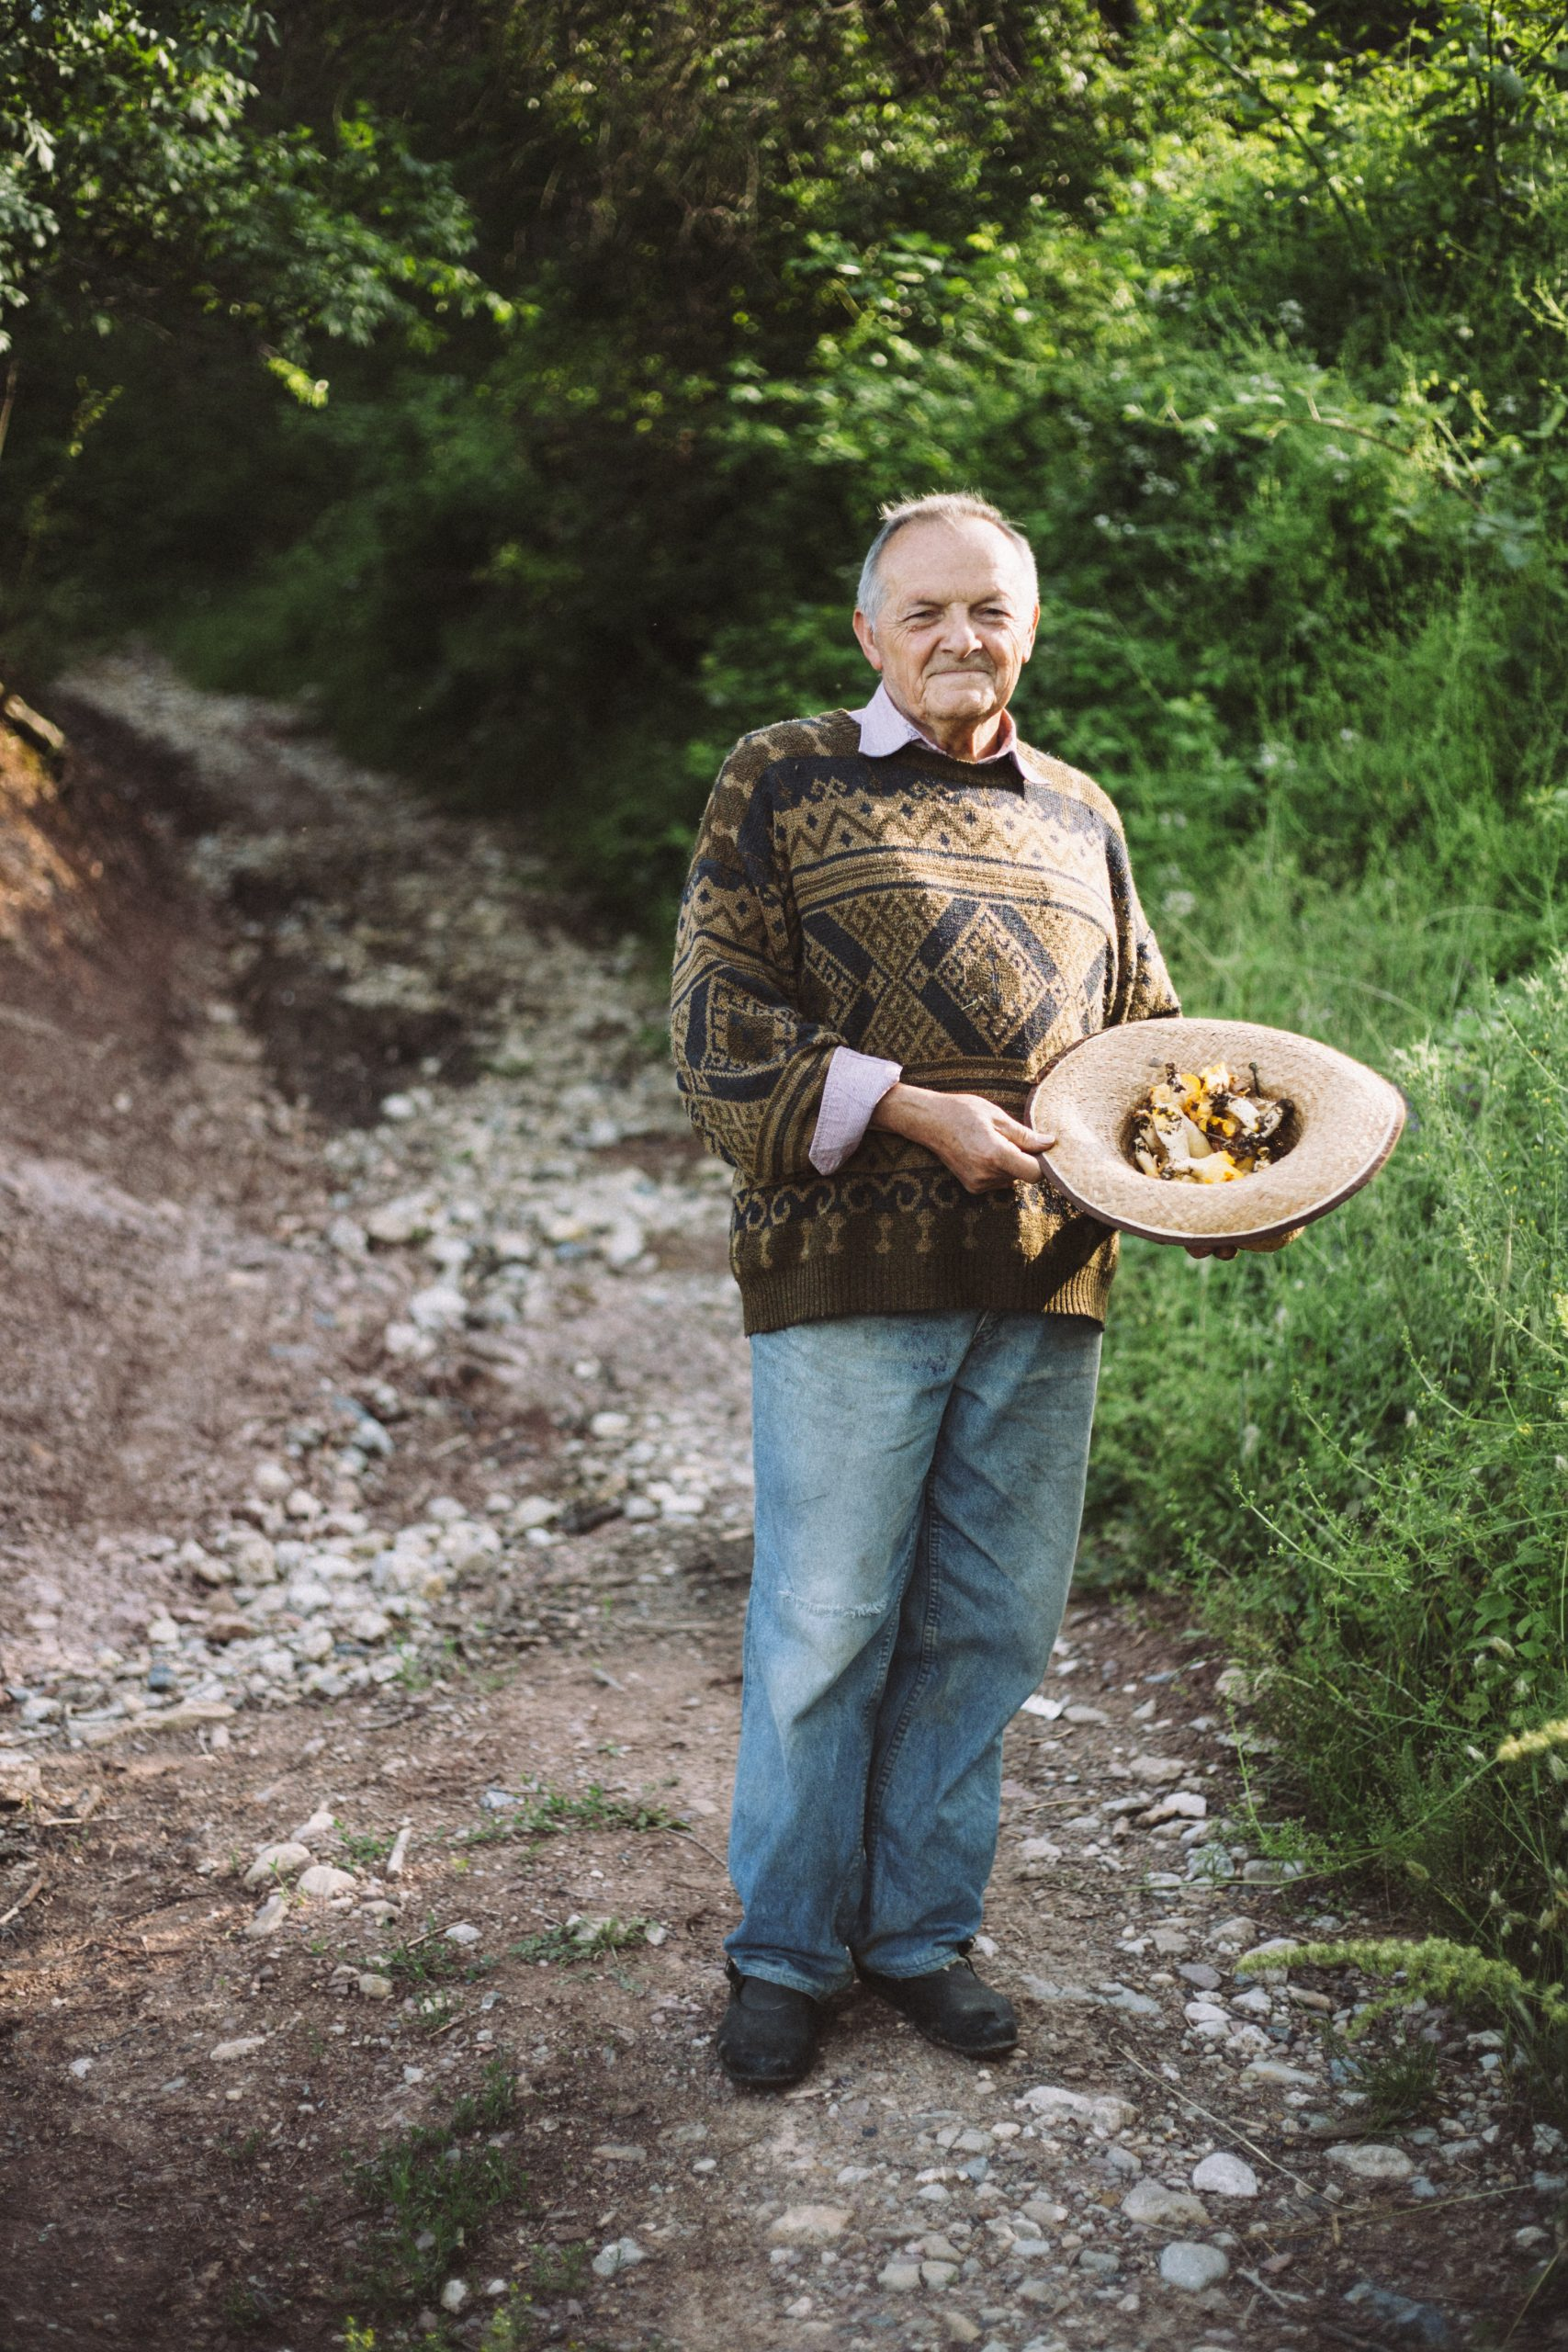 man collecting mushrooms in his hat